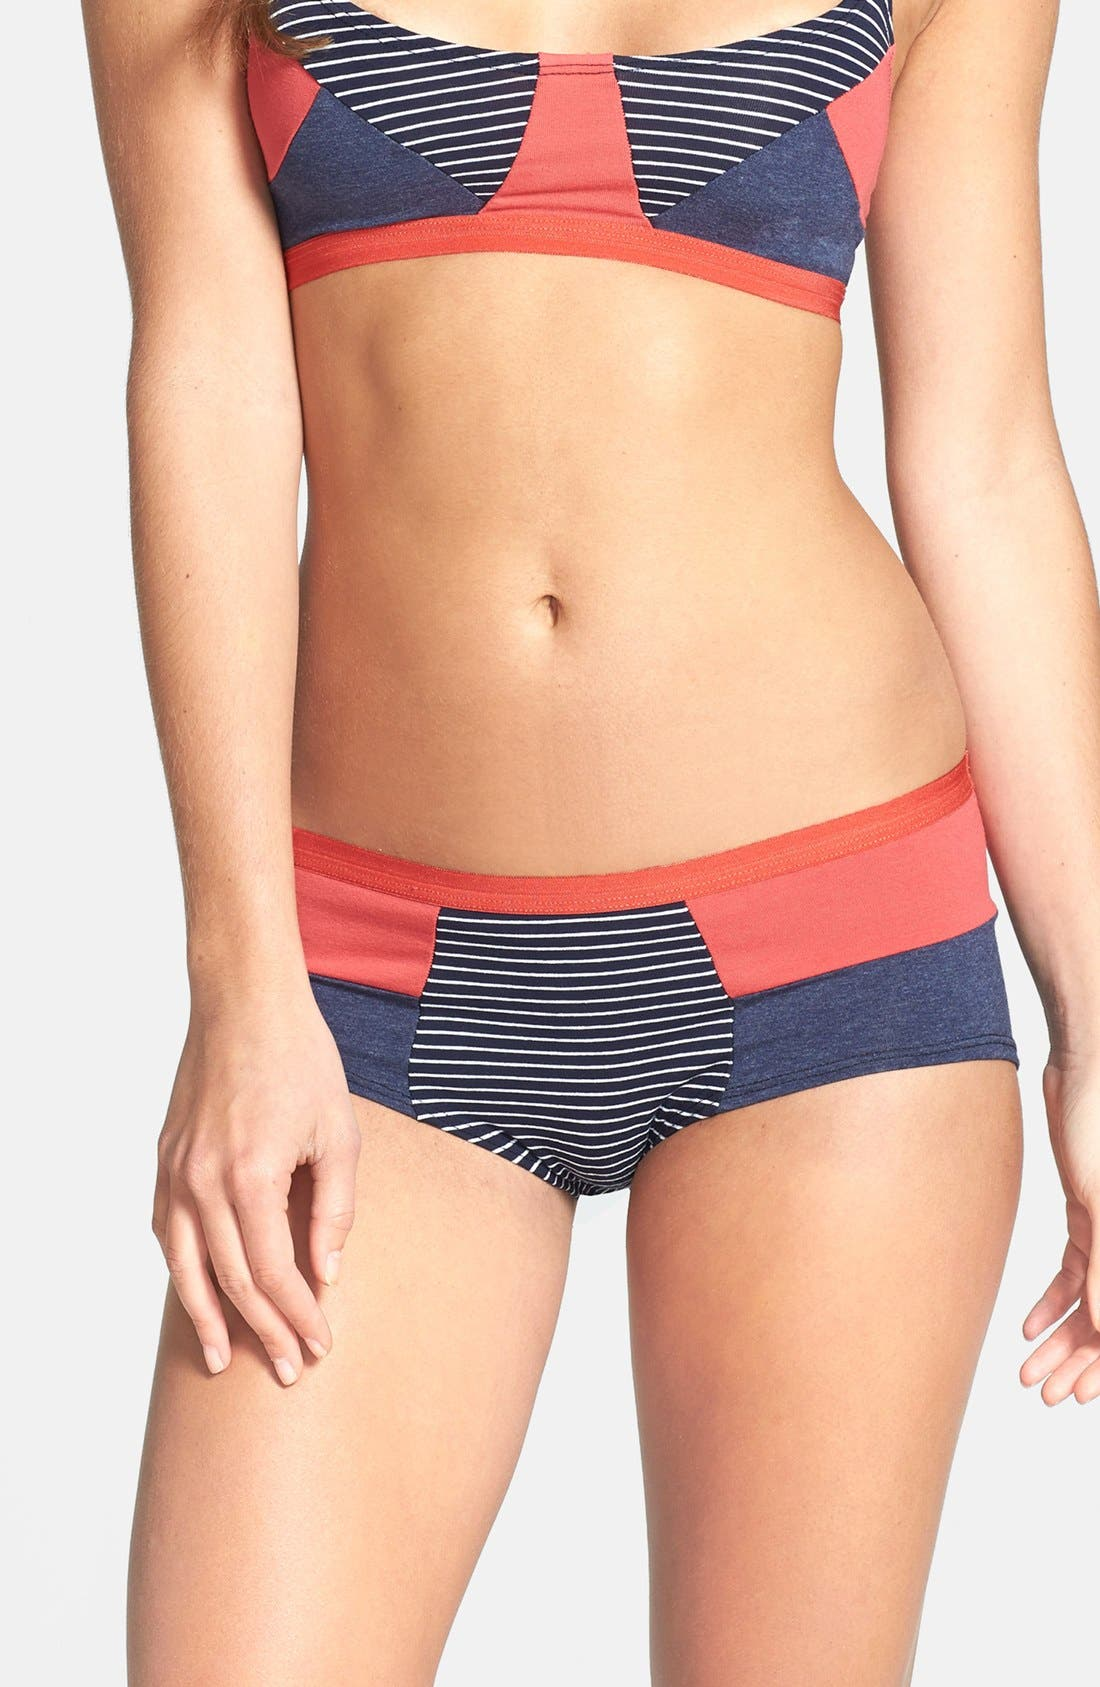 Main Image - Only Hearts 'So Fine' Patchwork Hipster Briefs